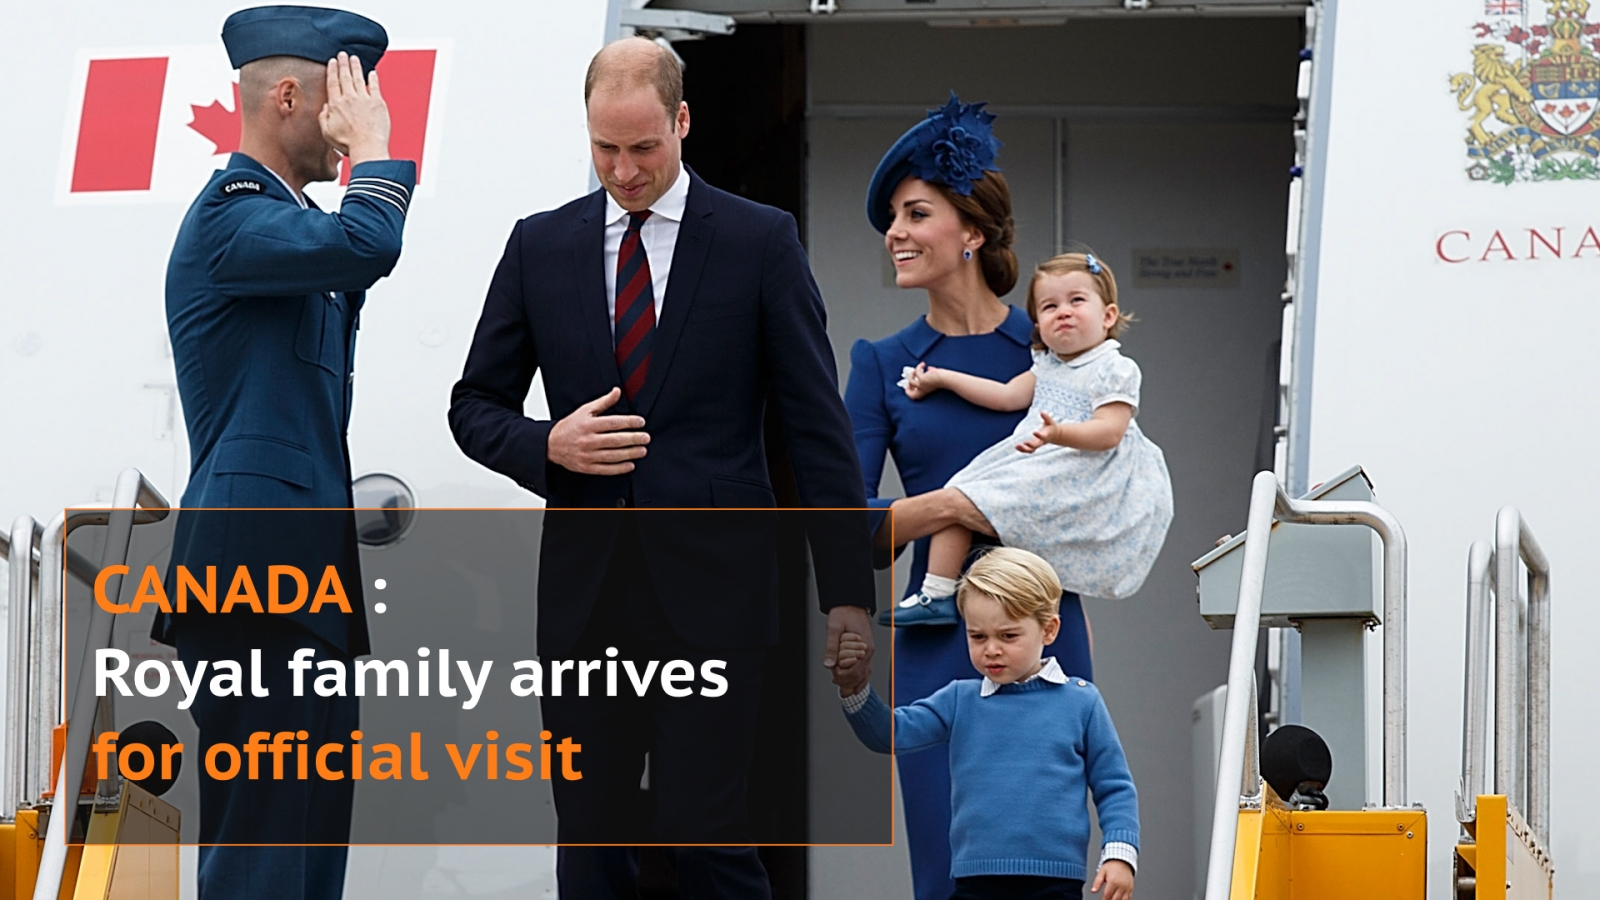 Royal family arrives in Canada